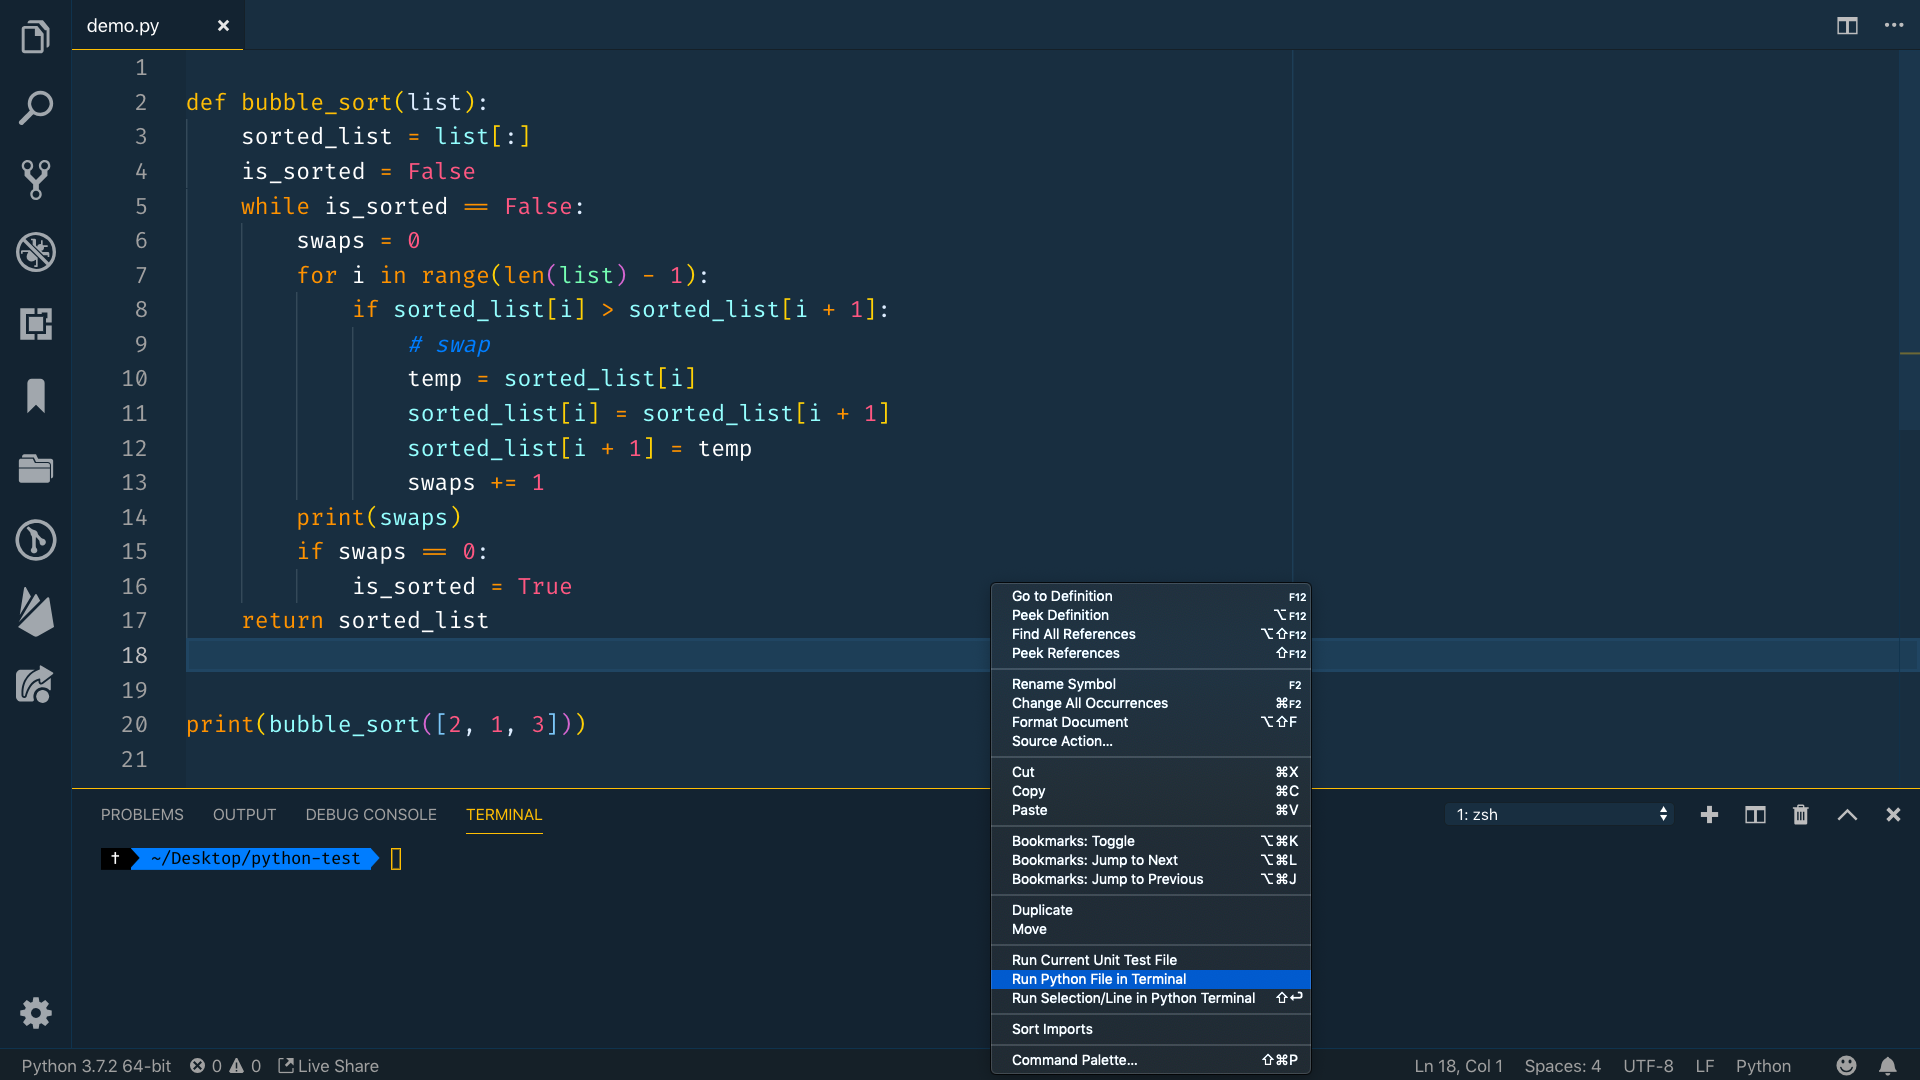 algorithm in the editor with menu up and Run Python File In Terminal selected